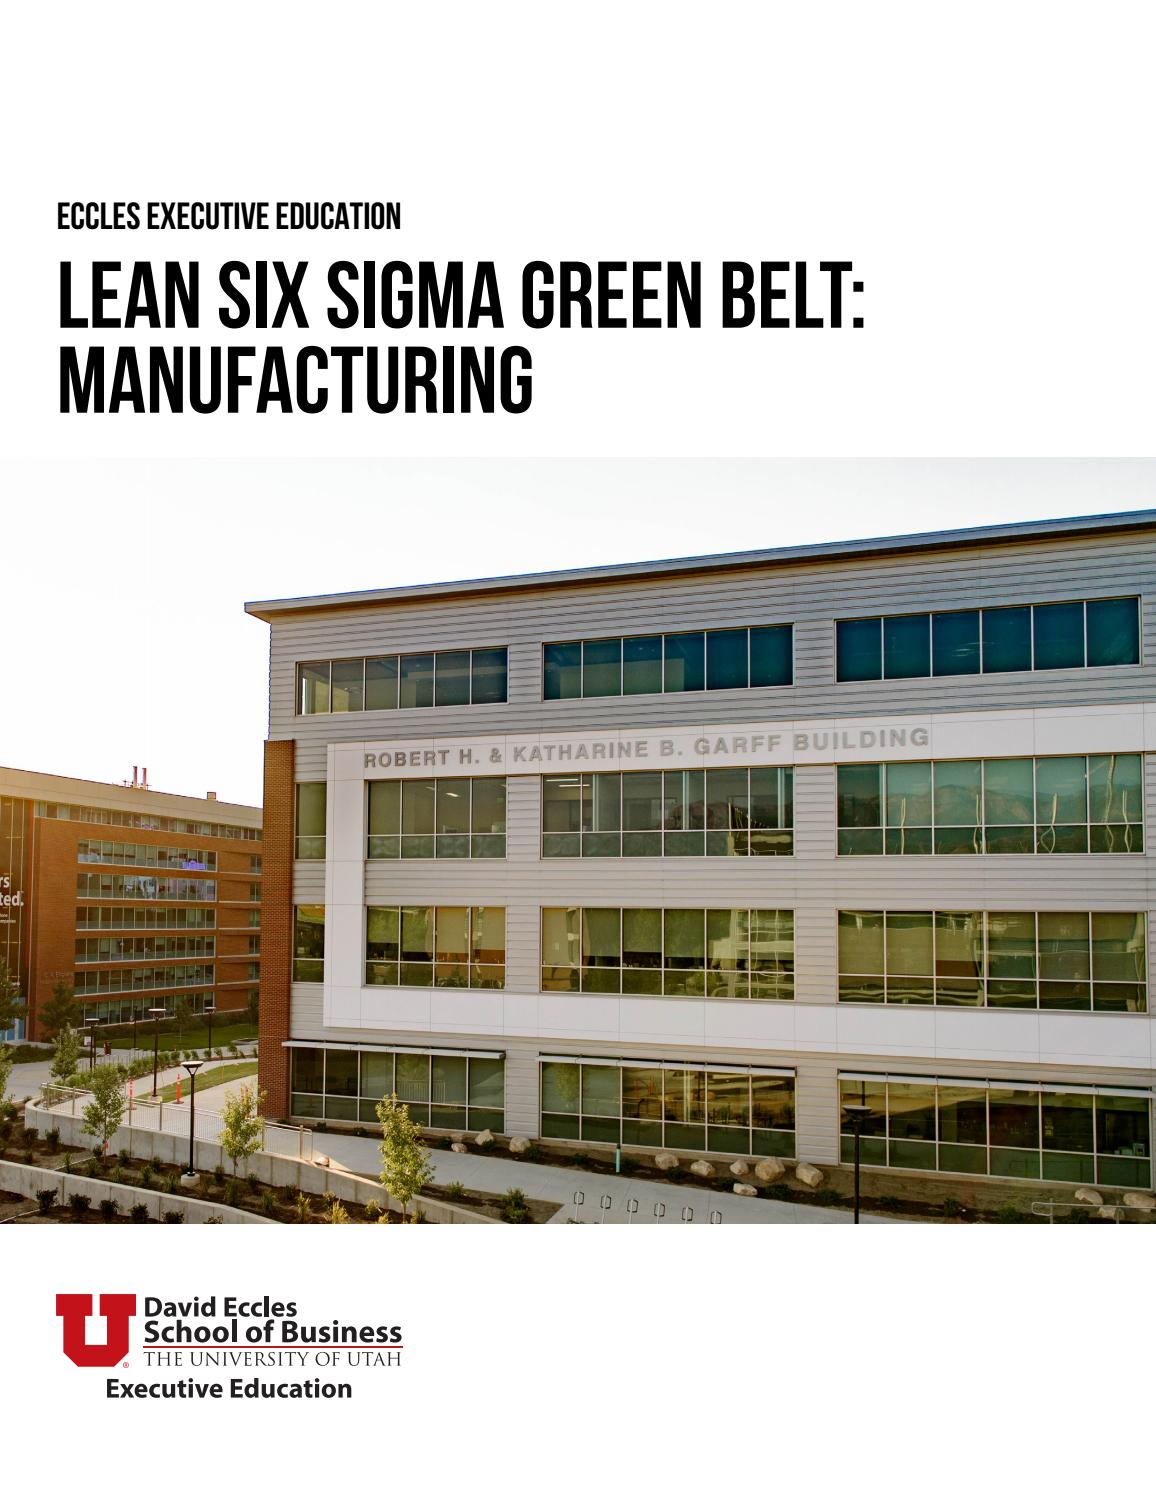 Lean Six Sigma Green Belt Manufacturing Class Guide By University